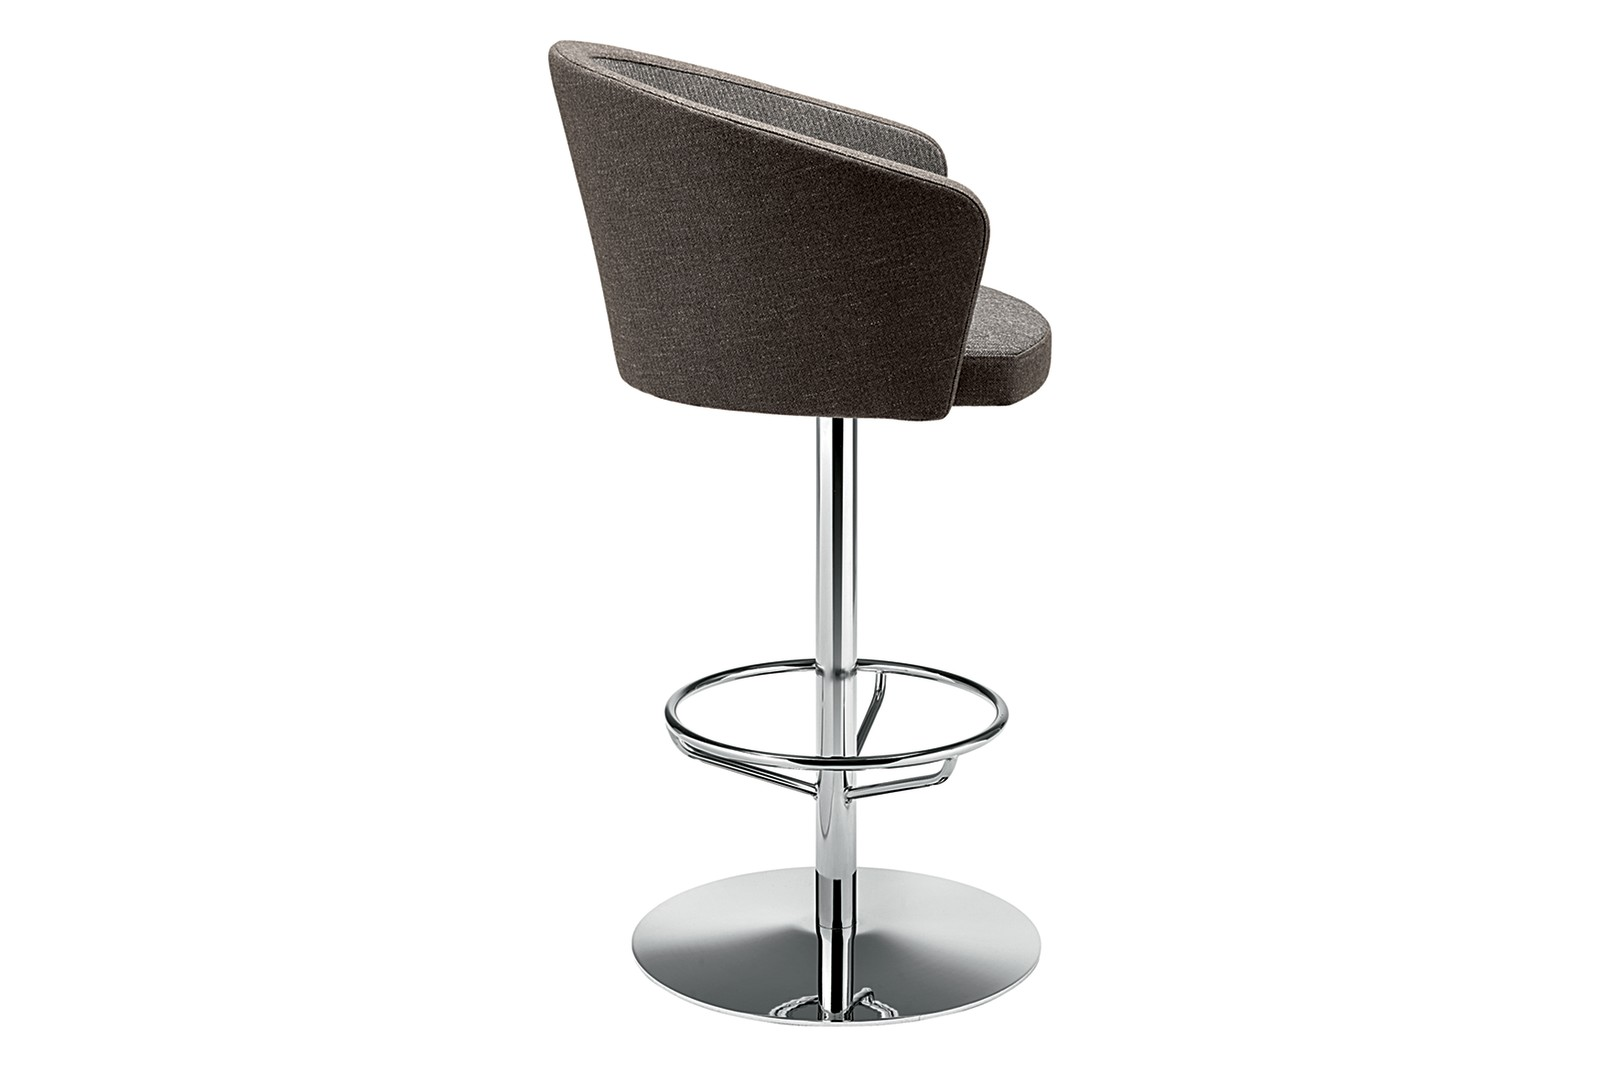 Kicca 320 Swivel Barstool Single Colour Pricegrp. Cat.a, CR Chrome